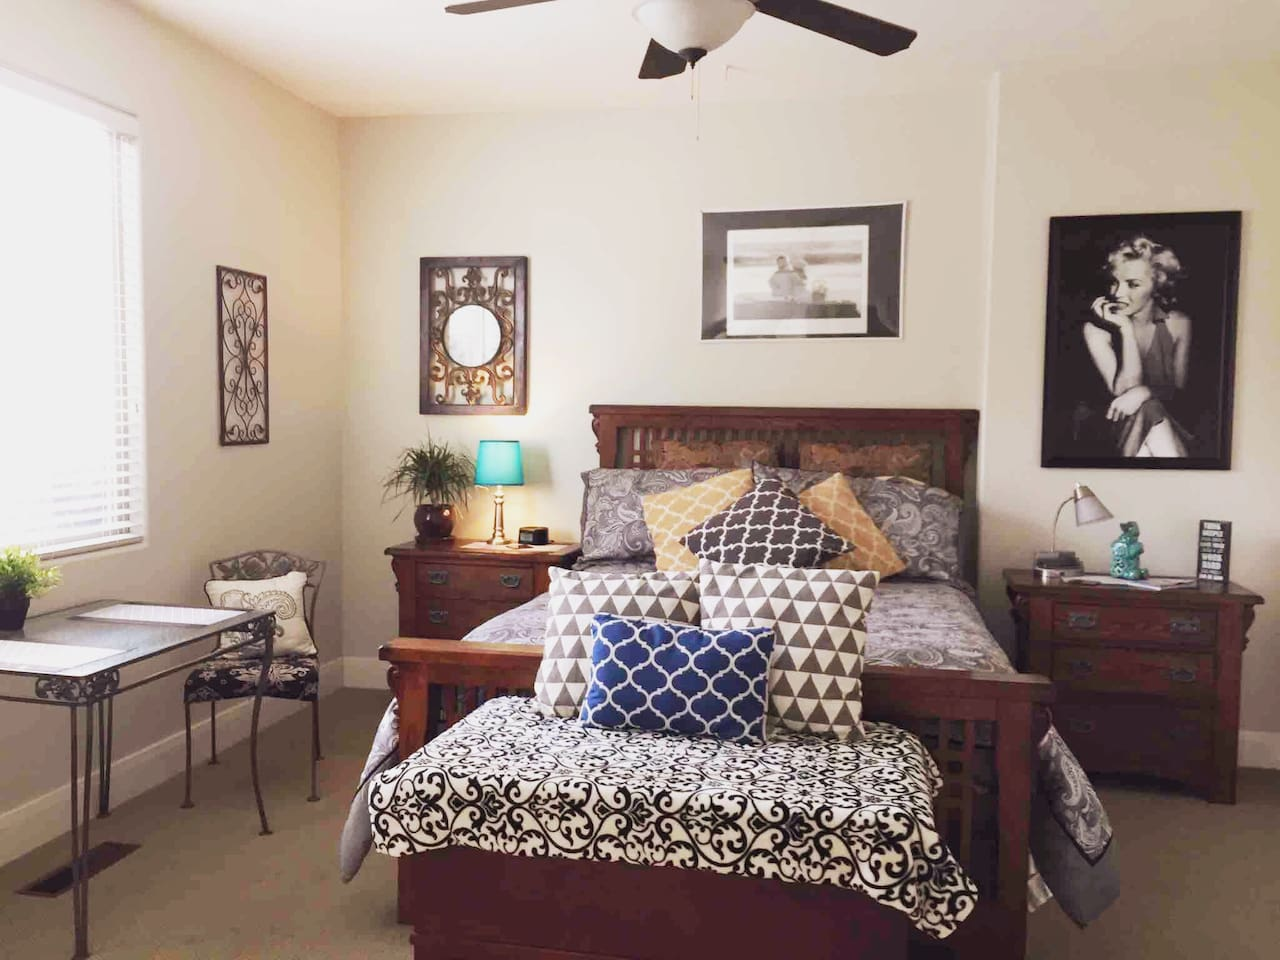 Comfortable Queen size bed with table and chairs for 2.